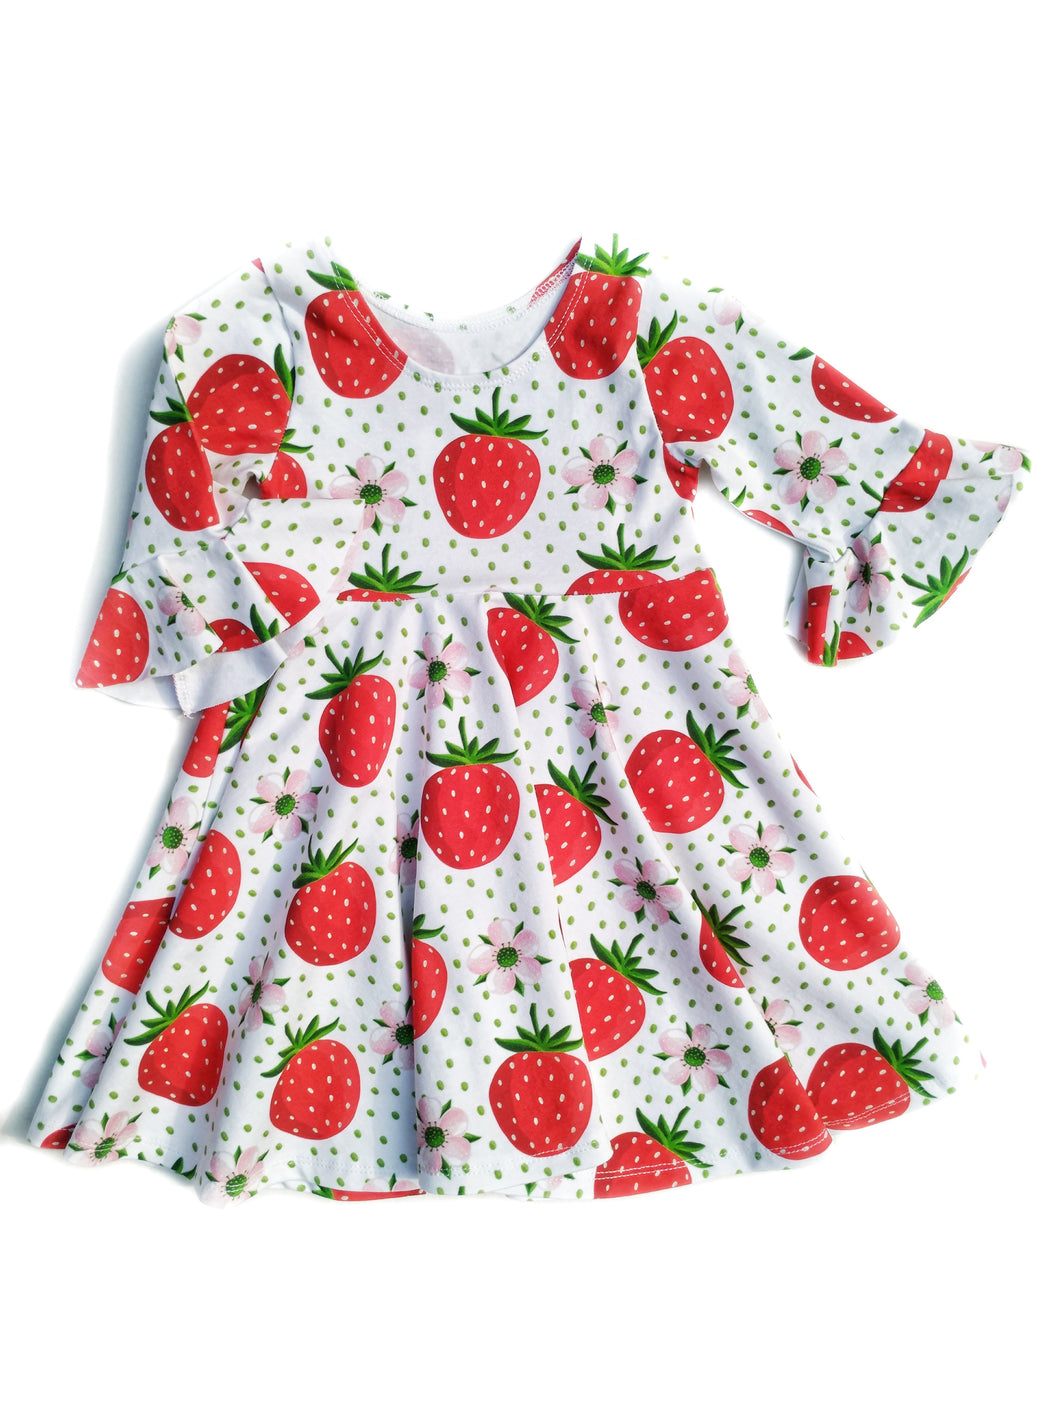 Infinity Dress - Strawberry - size 18-24 months